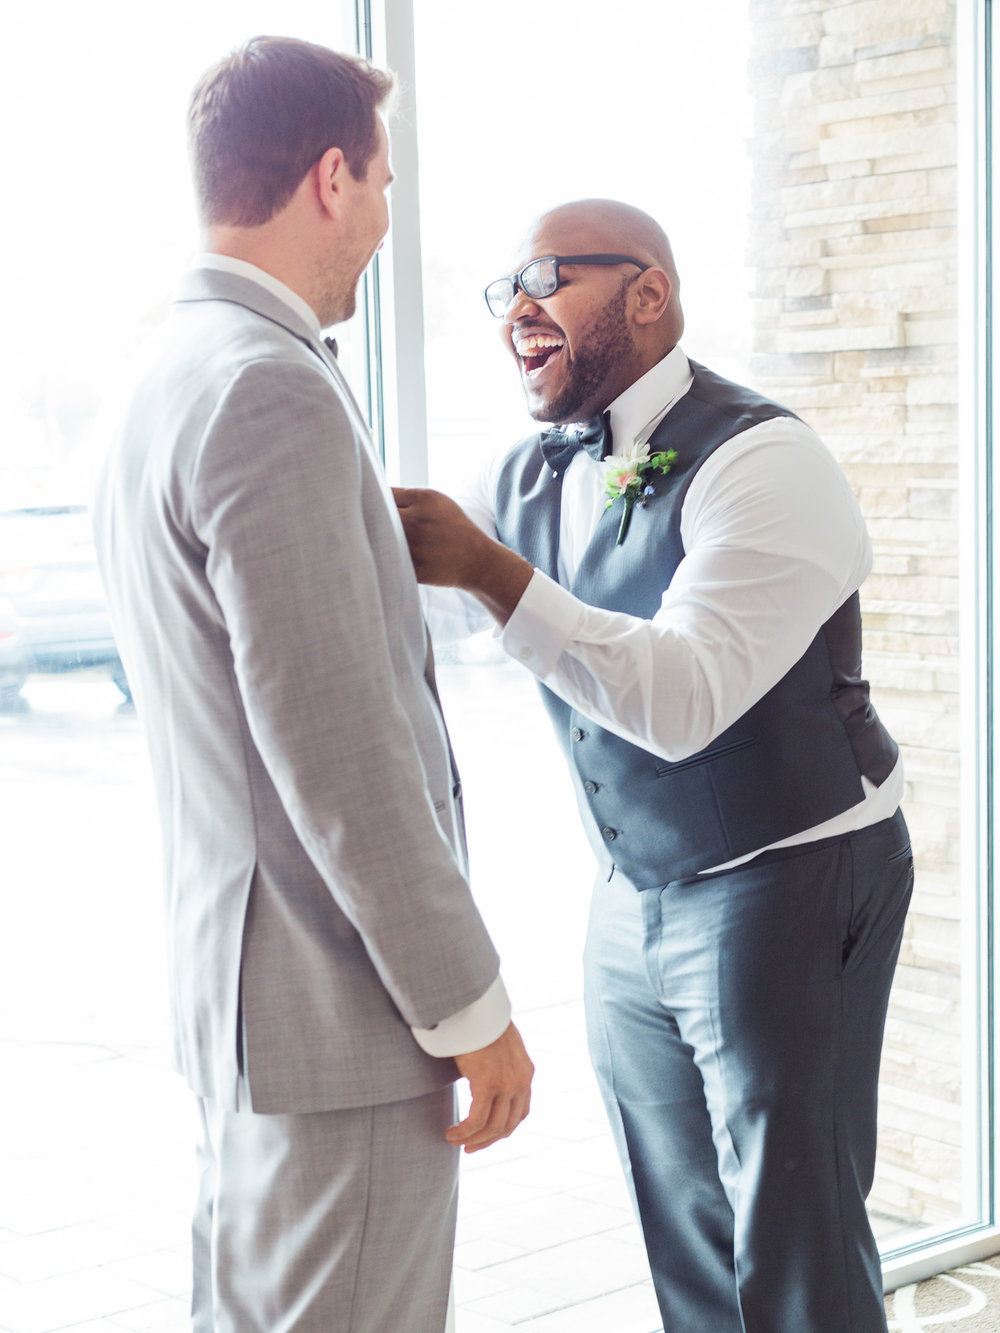 Godly Akron Wedding by Cleveland Wedding Photographer Matt Erickson Photography